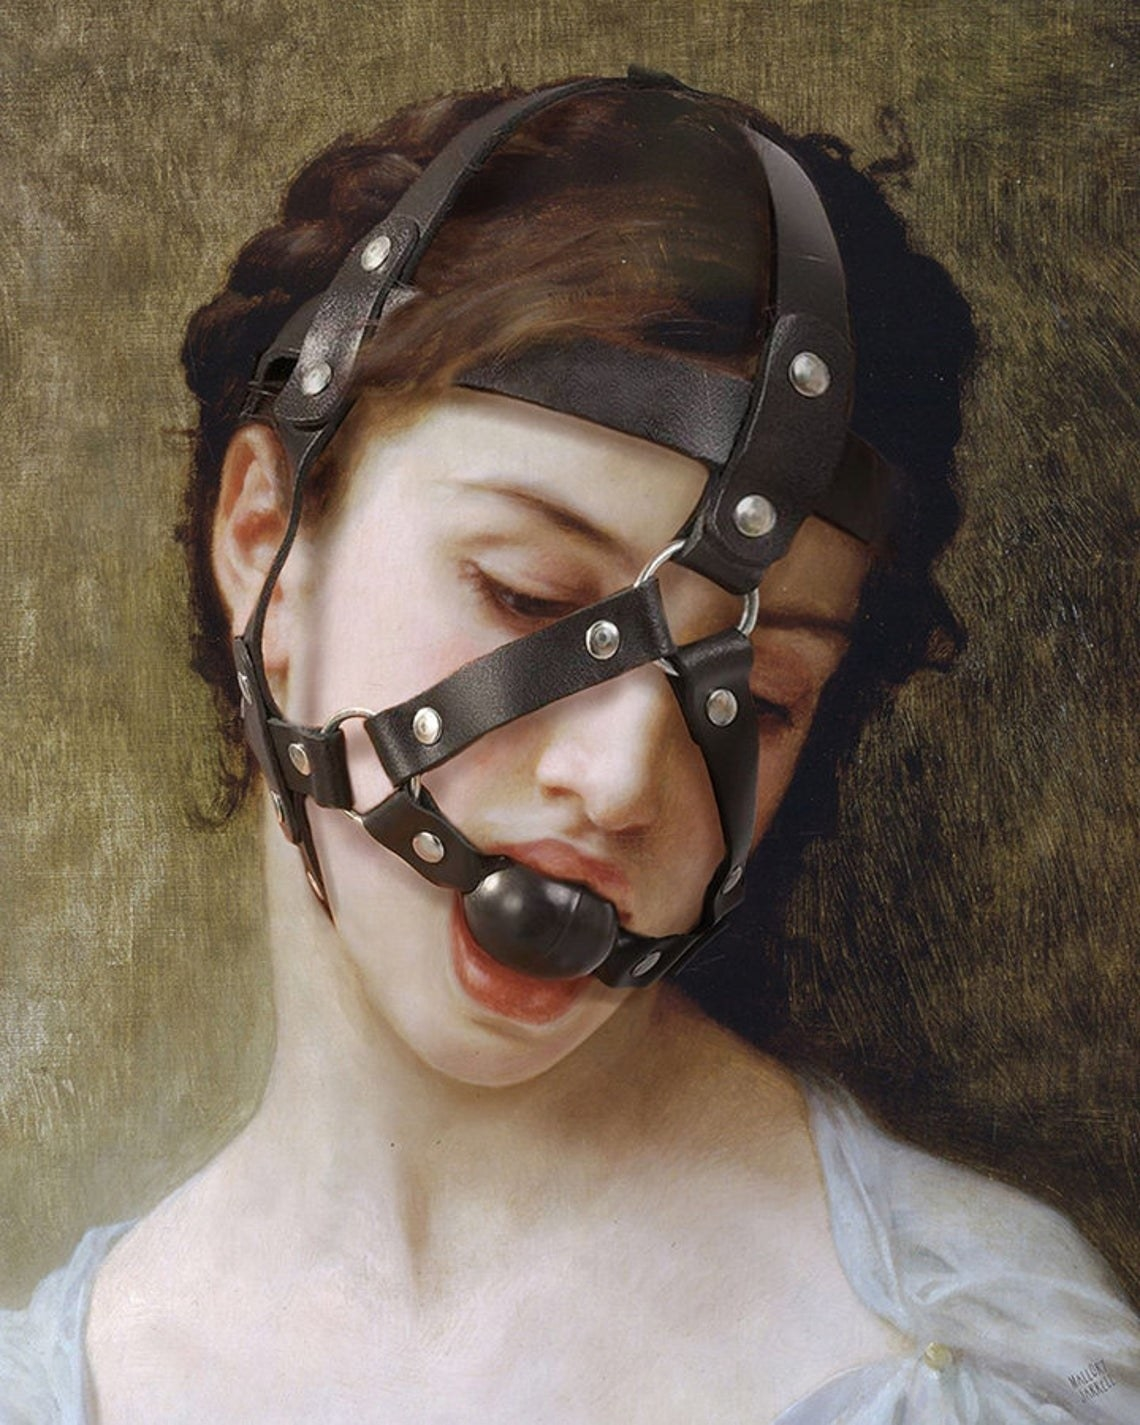 Classical style portrait of woman with added leather and metal face harness and ball gag